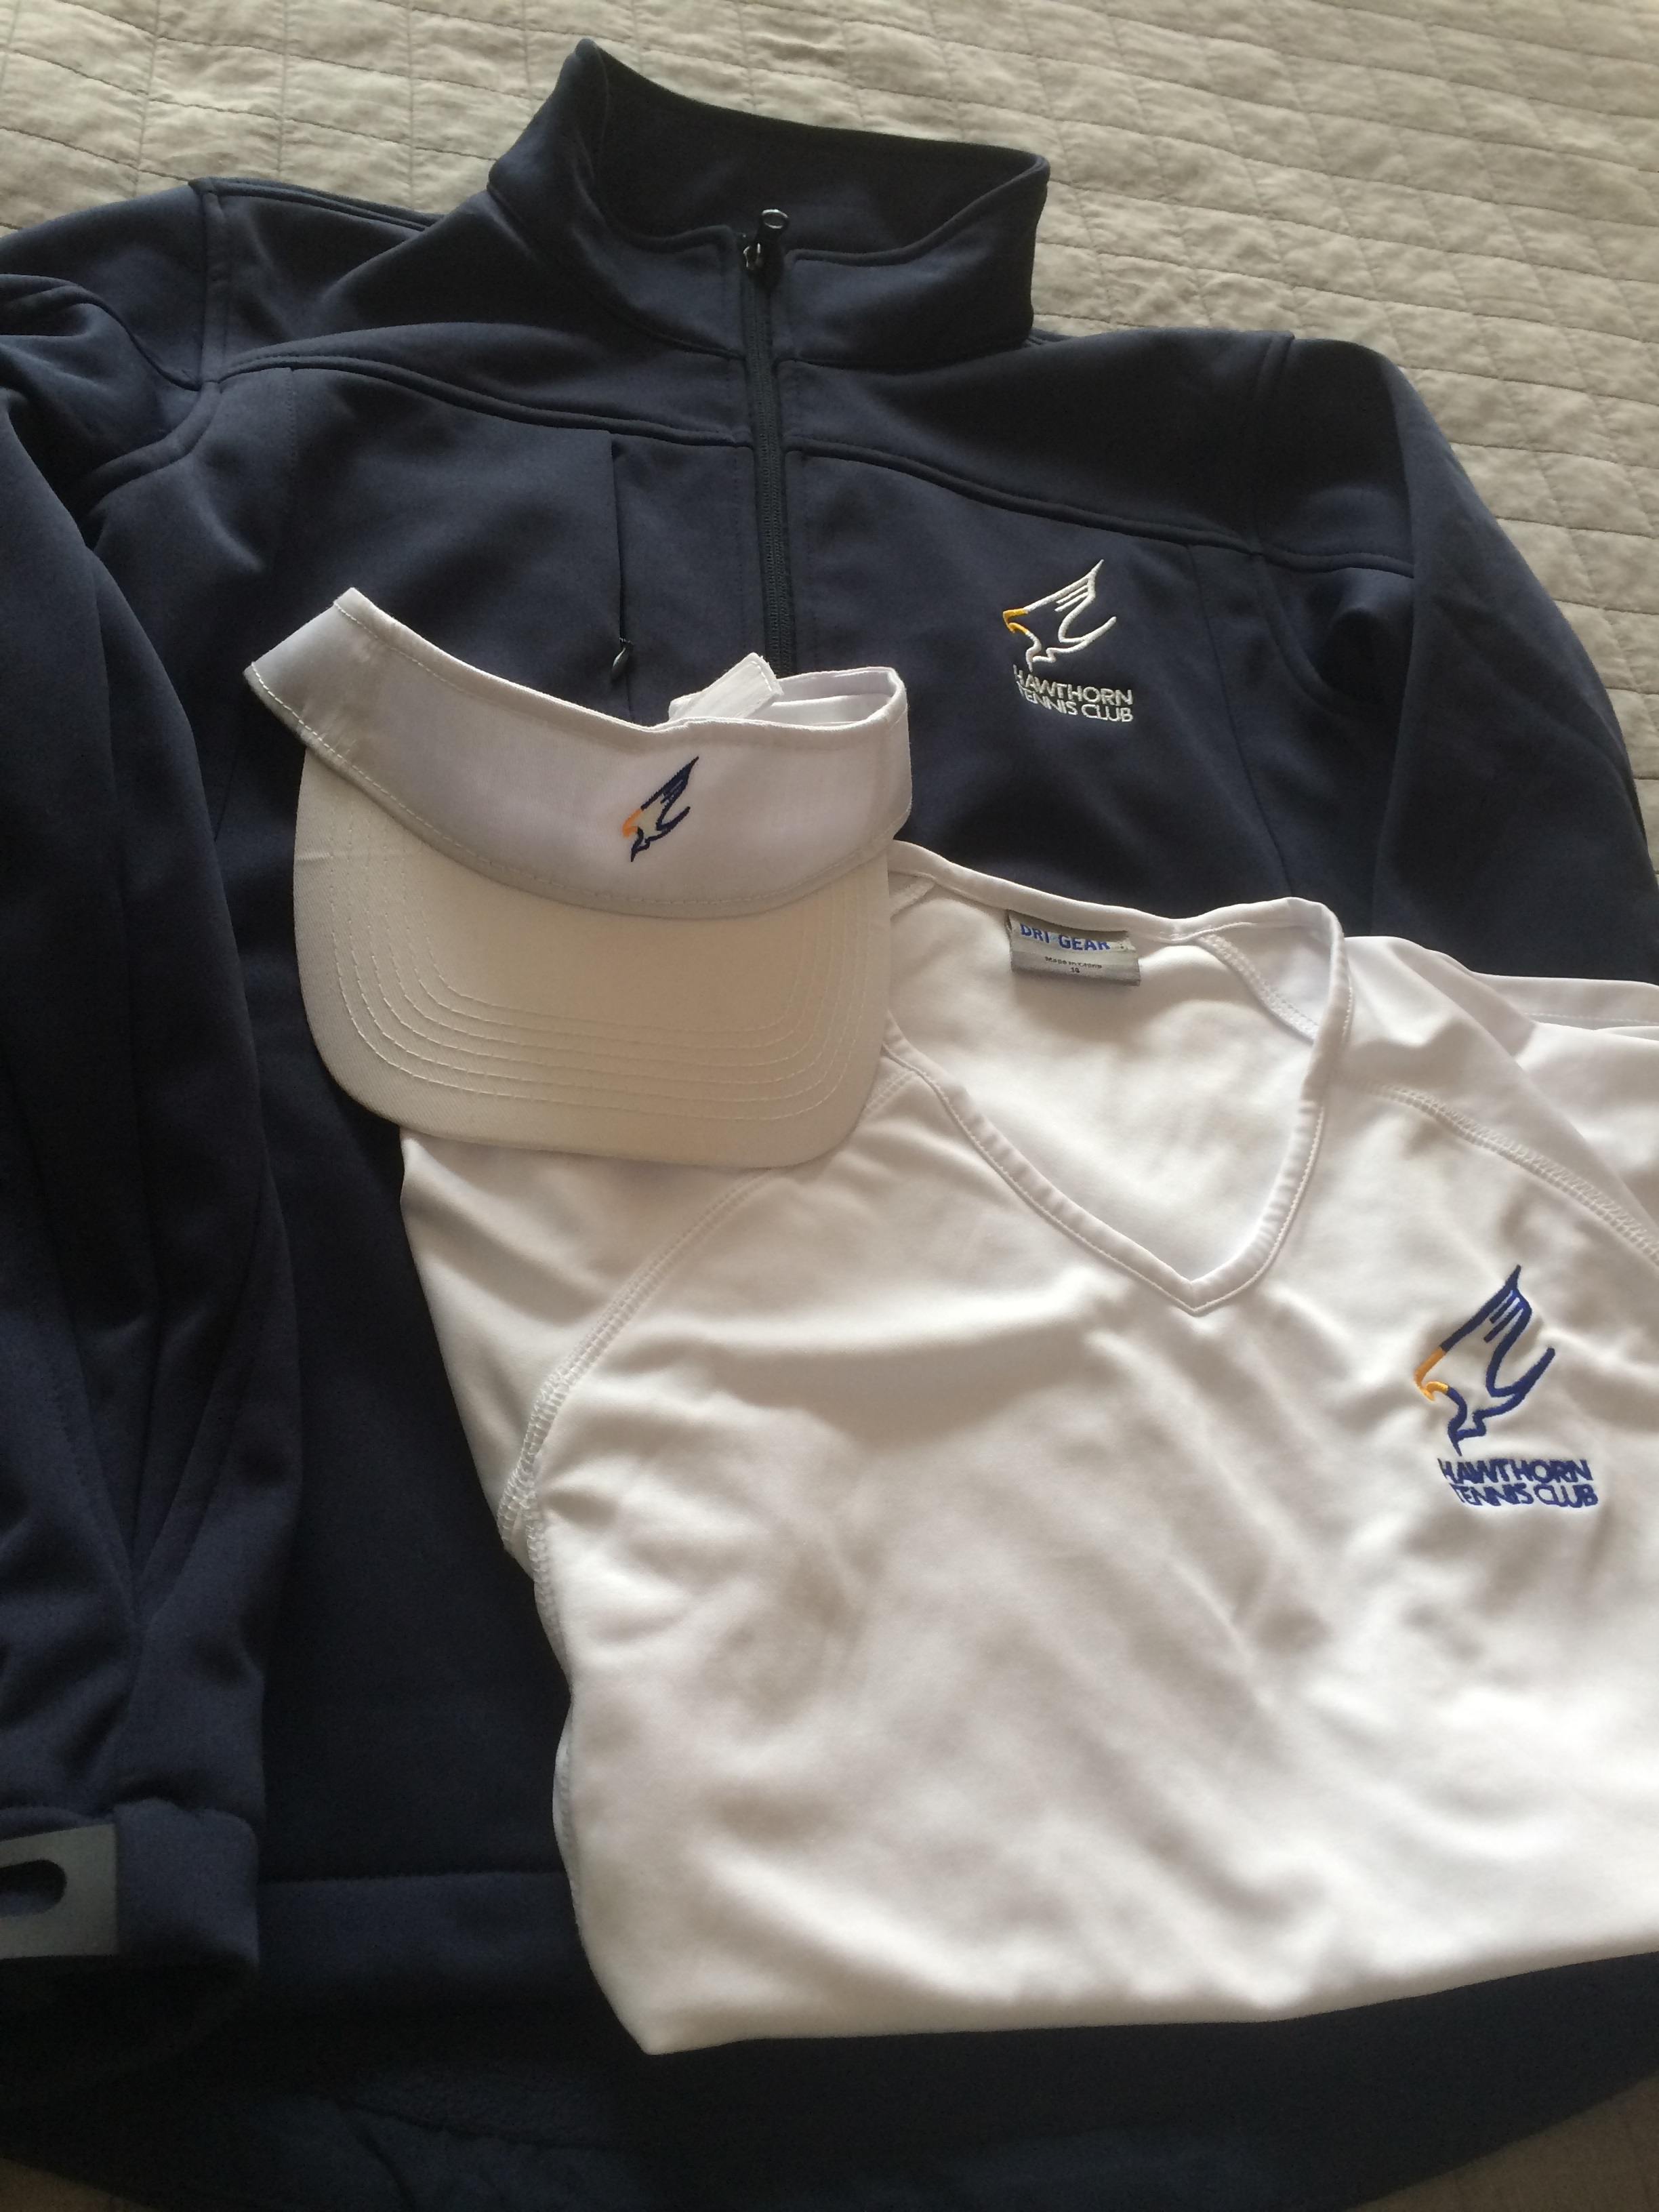 Jacket, Visor, and Women's V-neck shirt